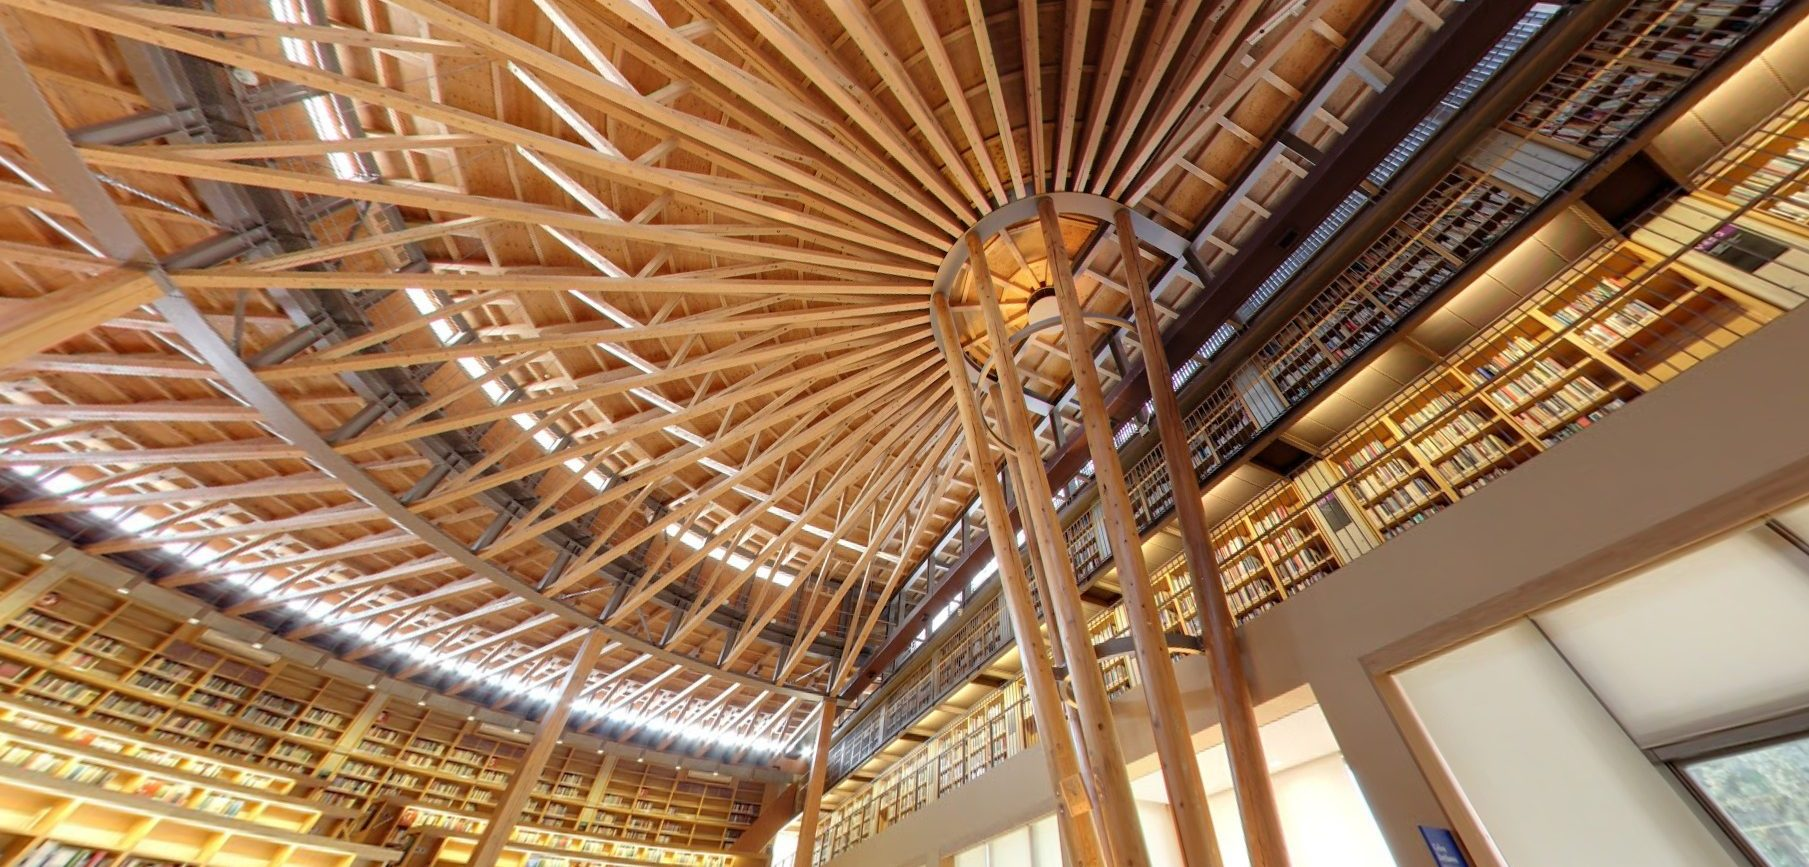 Nakajima Library, Libraries in Japan, Authentic Libraries